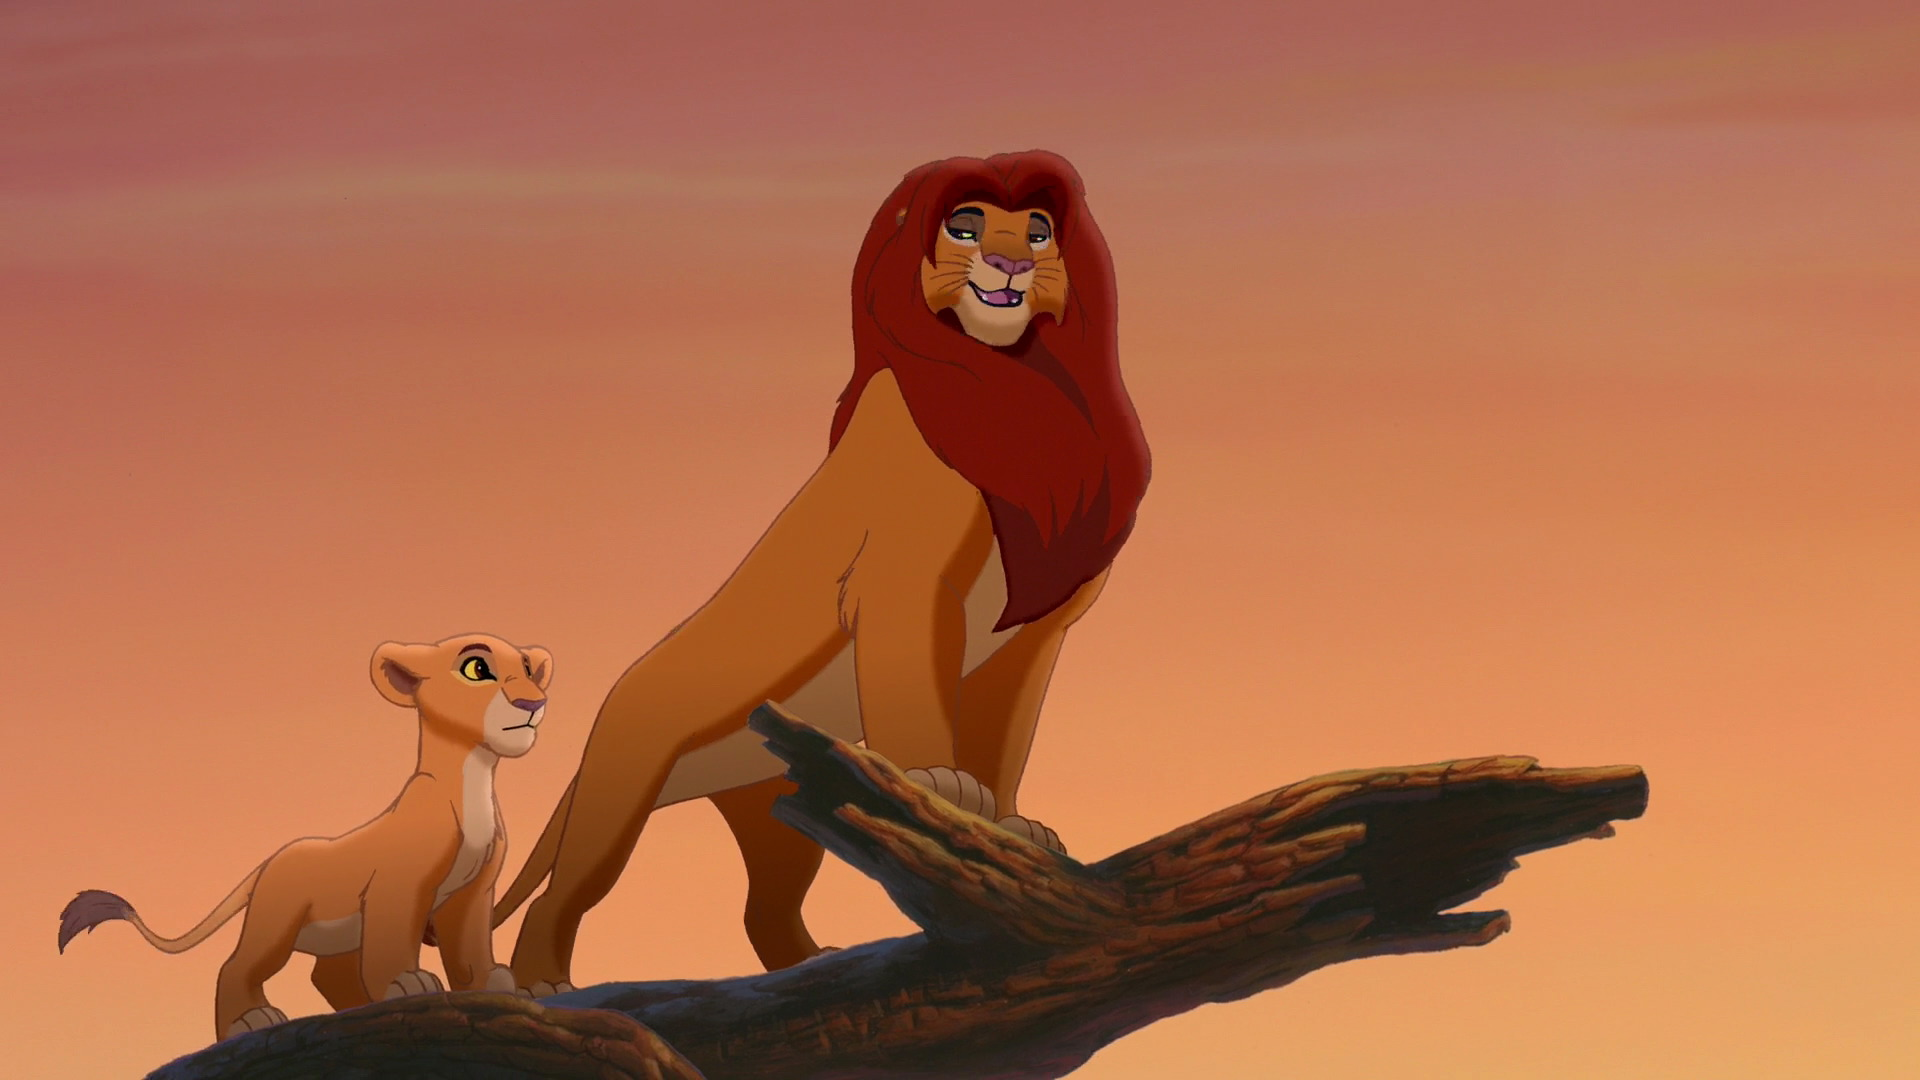 lion-king2-disneyscreencaps.com-2062.jpg